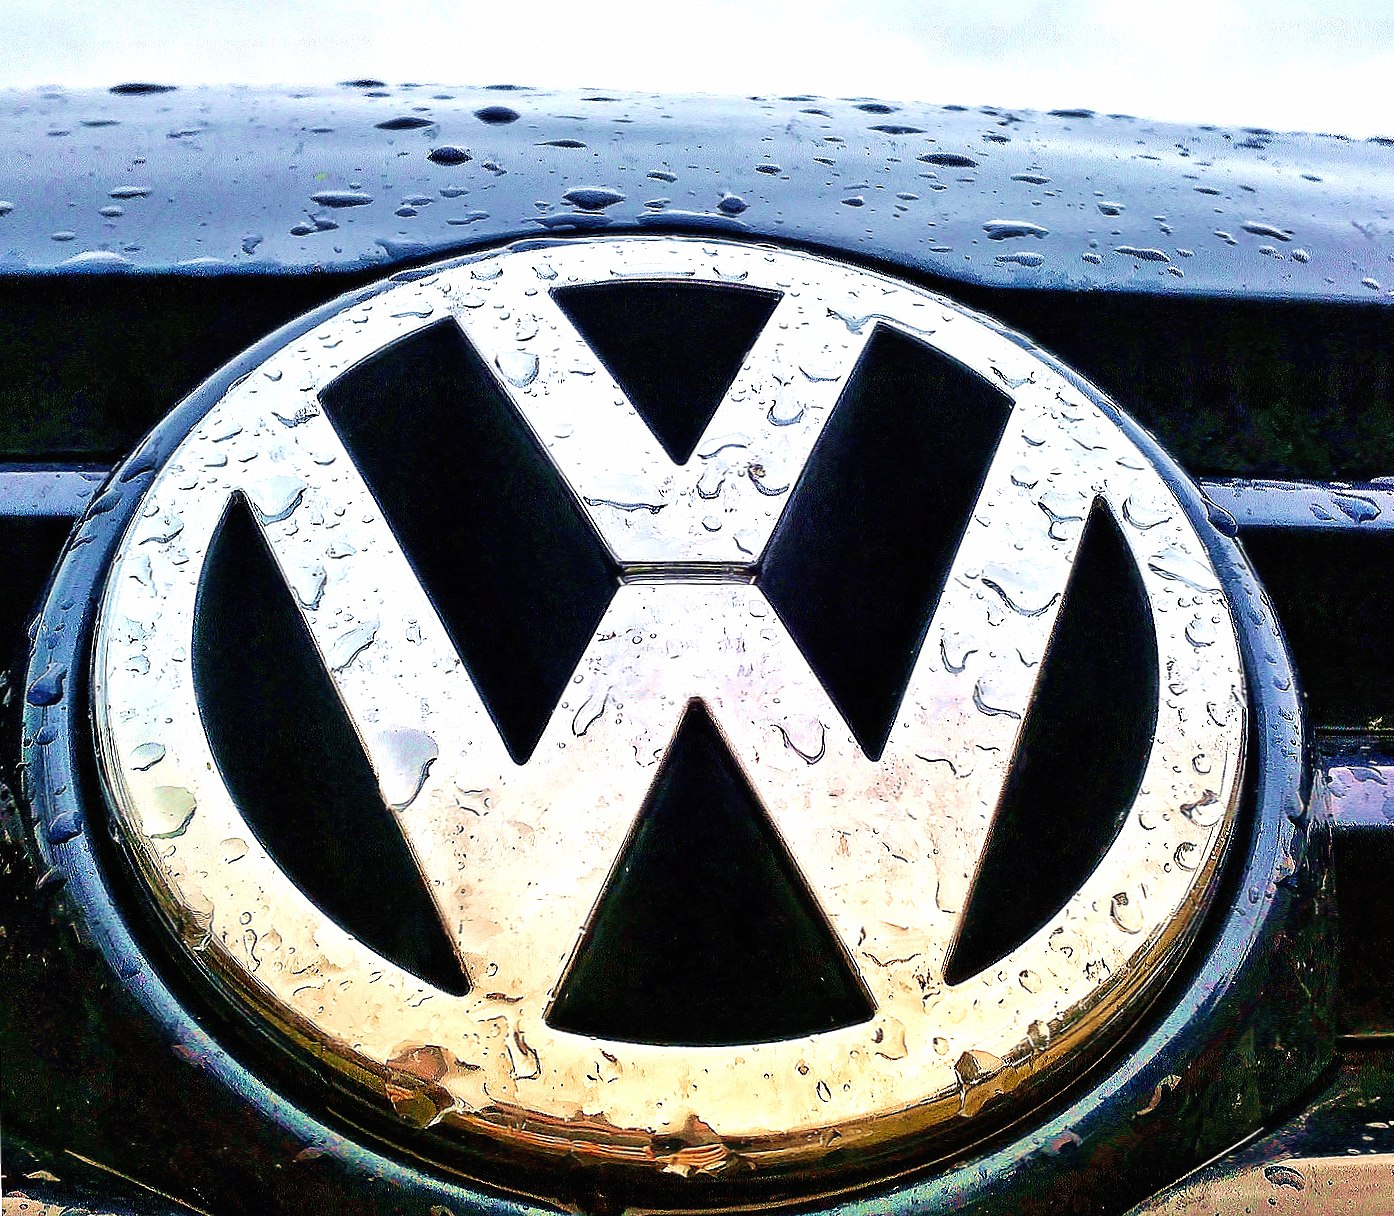 vw tdi wallpapers HD quality